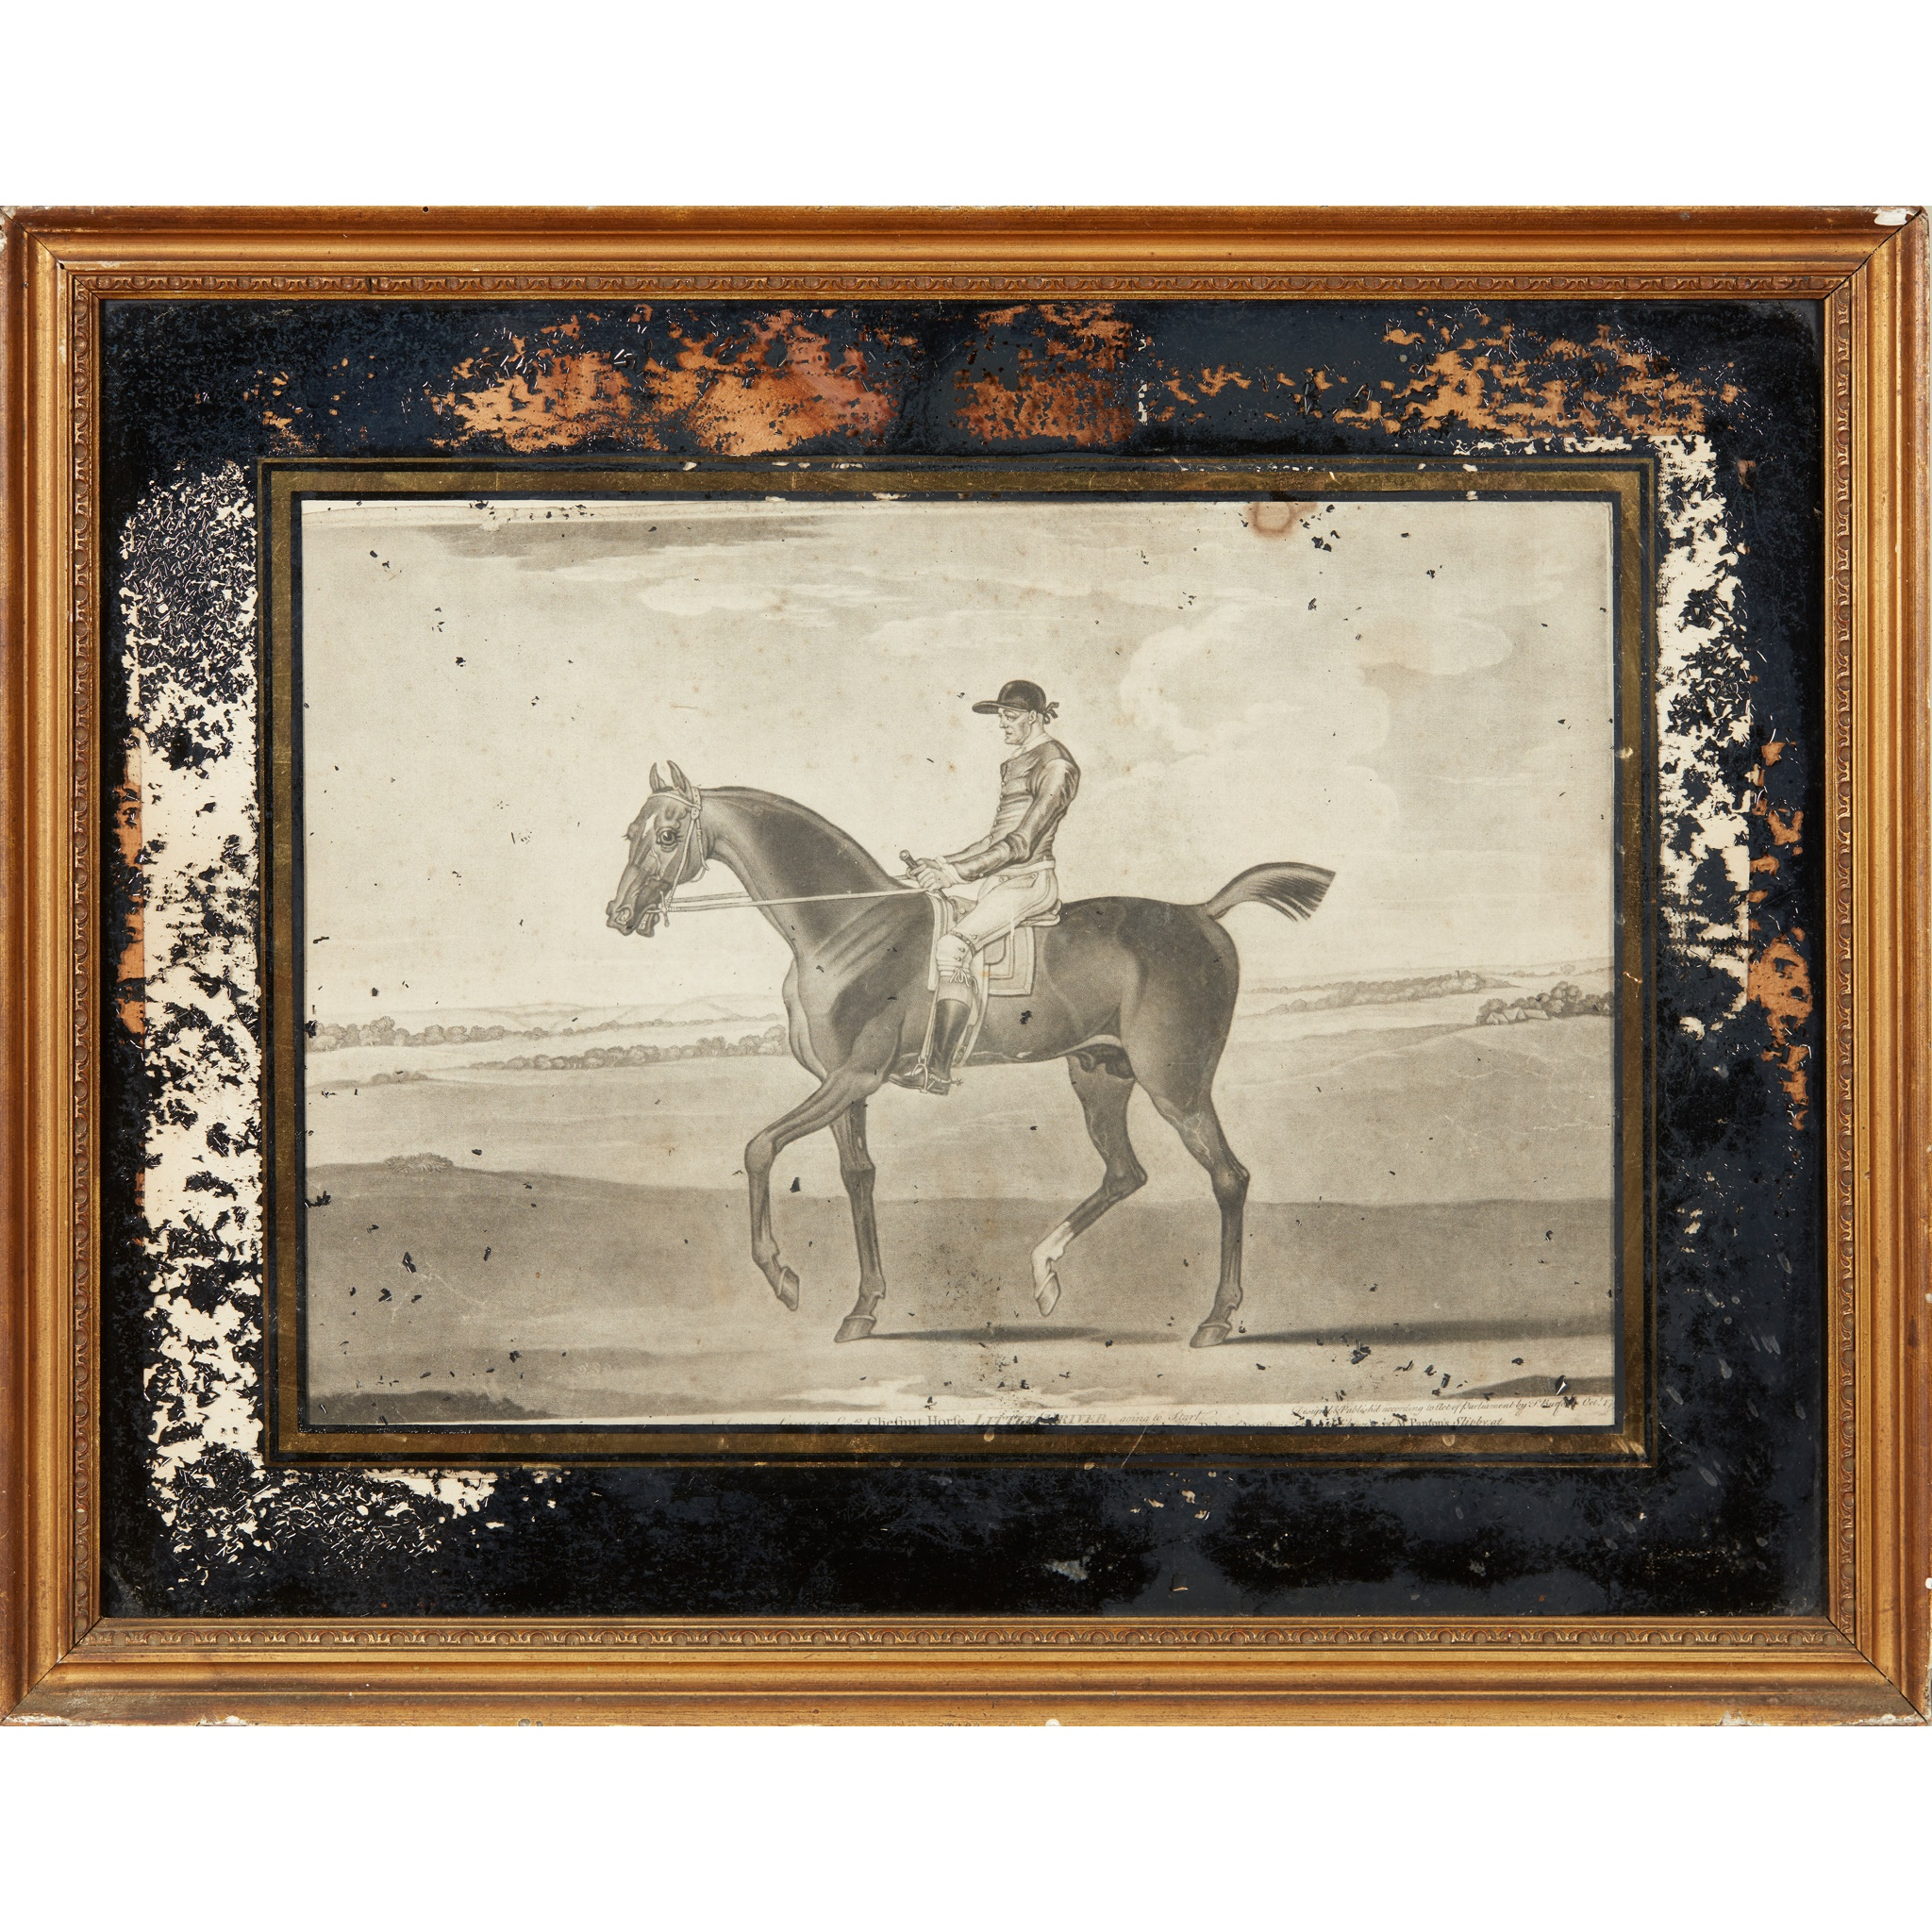 COLLECTION OF ELEVEN MEZZOTINT EQUESTRIAN PRINTS LATE 18TH CENTURY - Image 8 of 8